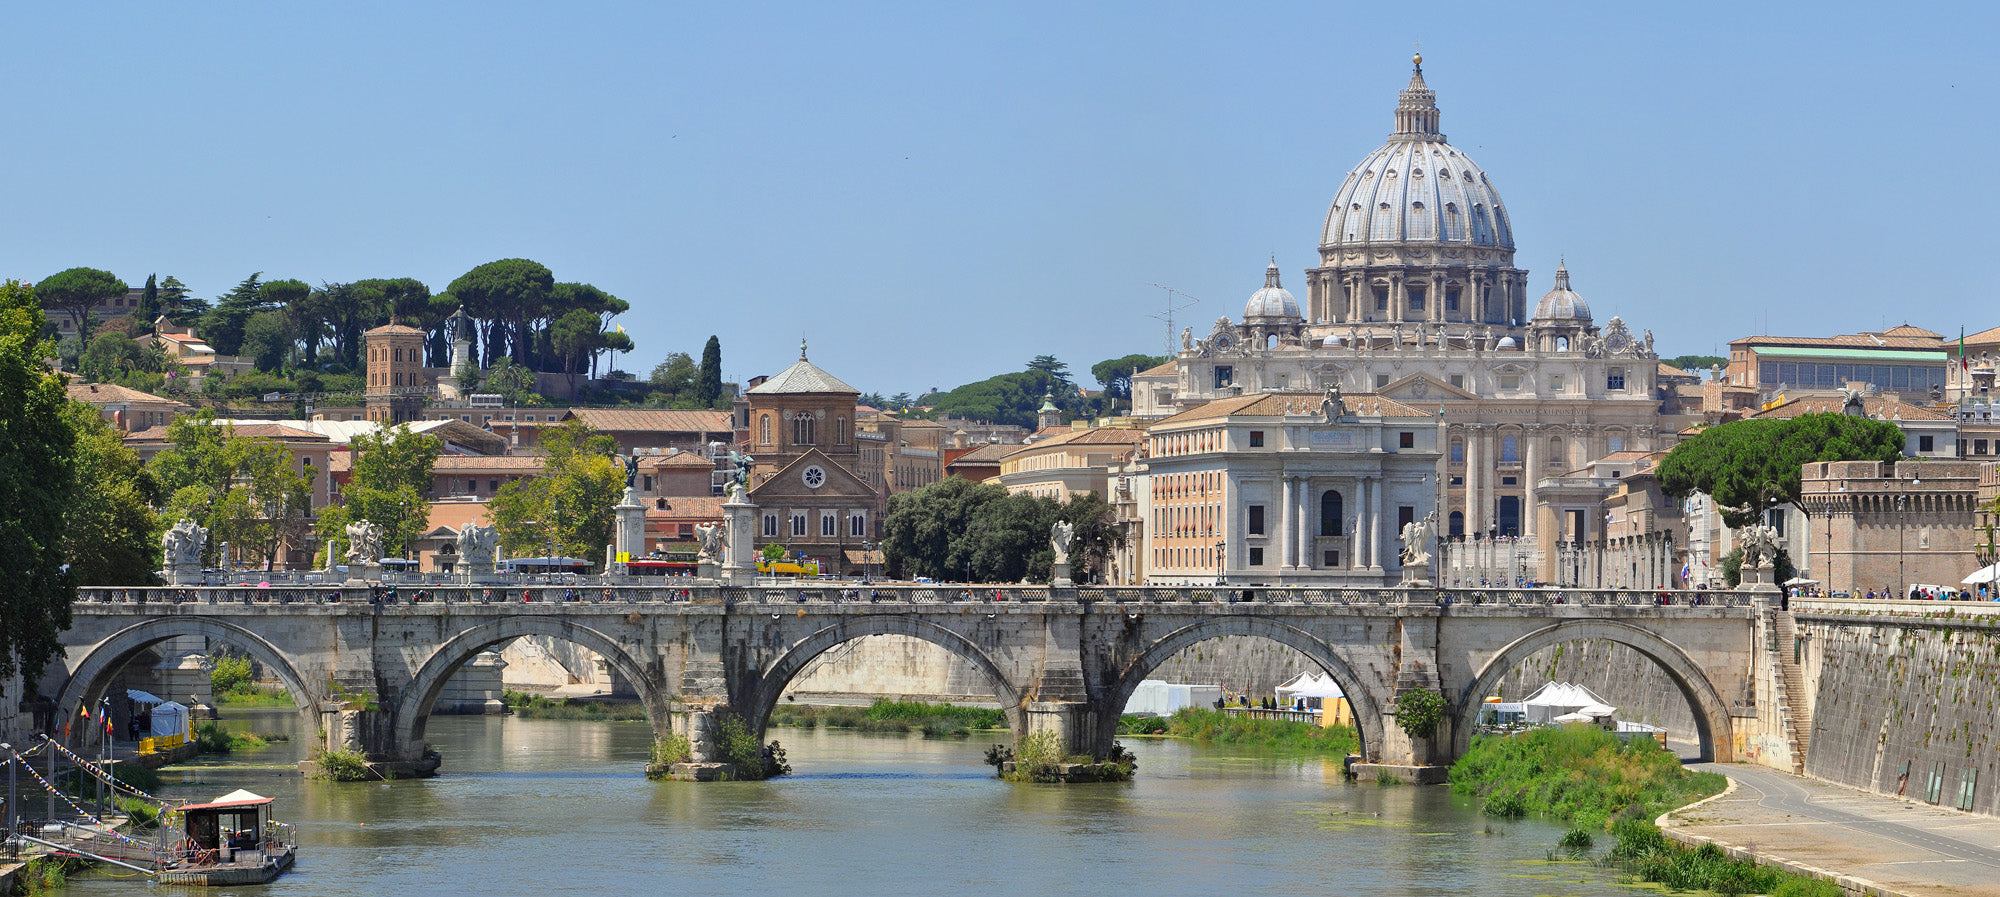 Saint-Peters Basilica & Saint Angelo bridge - Limited Edition 60 cm x 130 cm